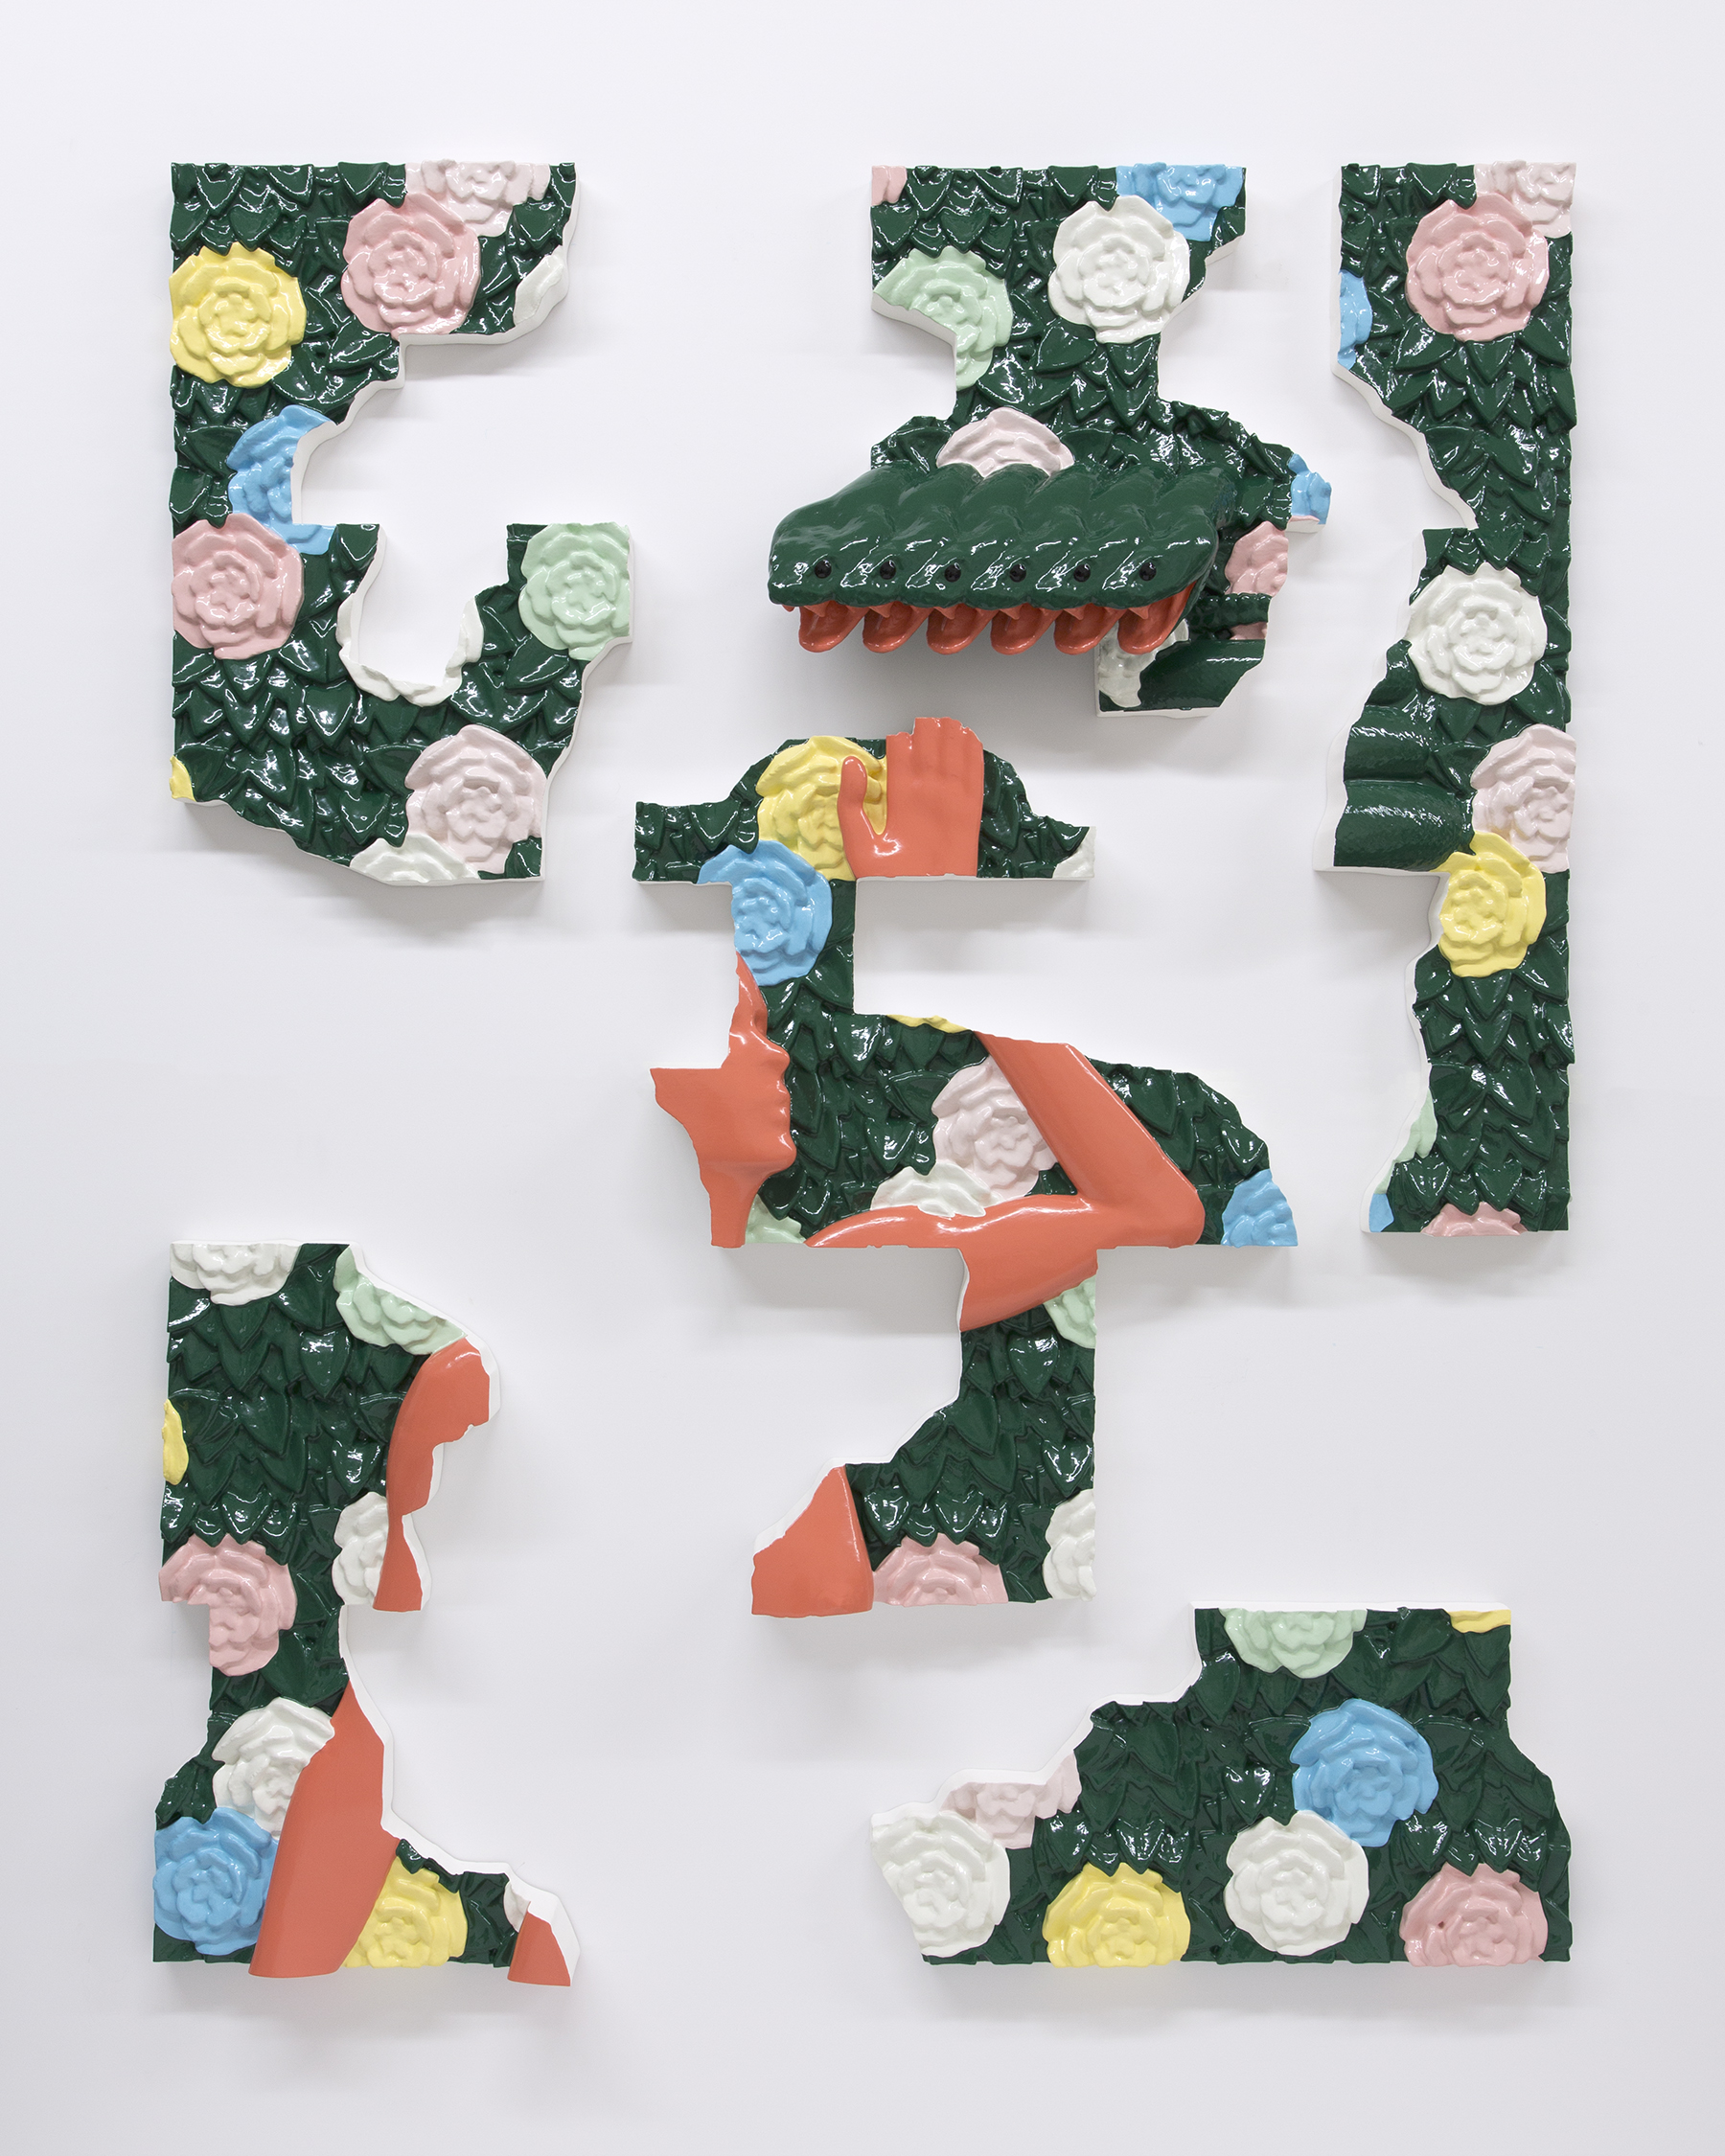 Matthew Paladino_In-A-Gadda (In The Garden)_Enamel on resin, plastic and wood in 6 panel sections_142 x 111 x  12,5 cm_2018.jpg